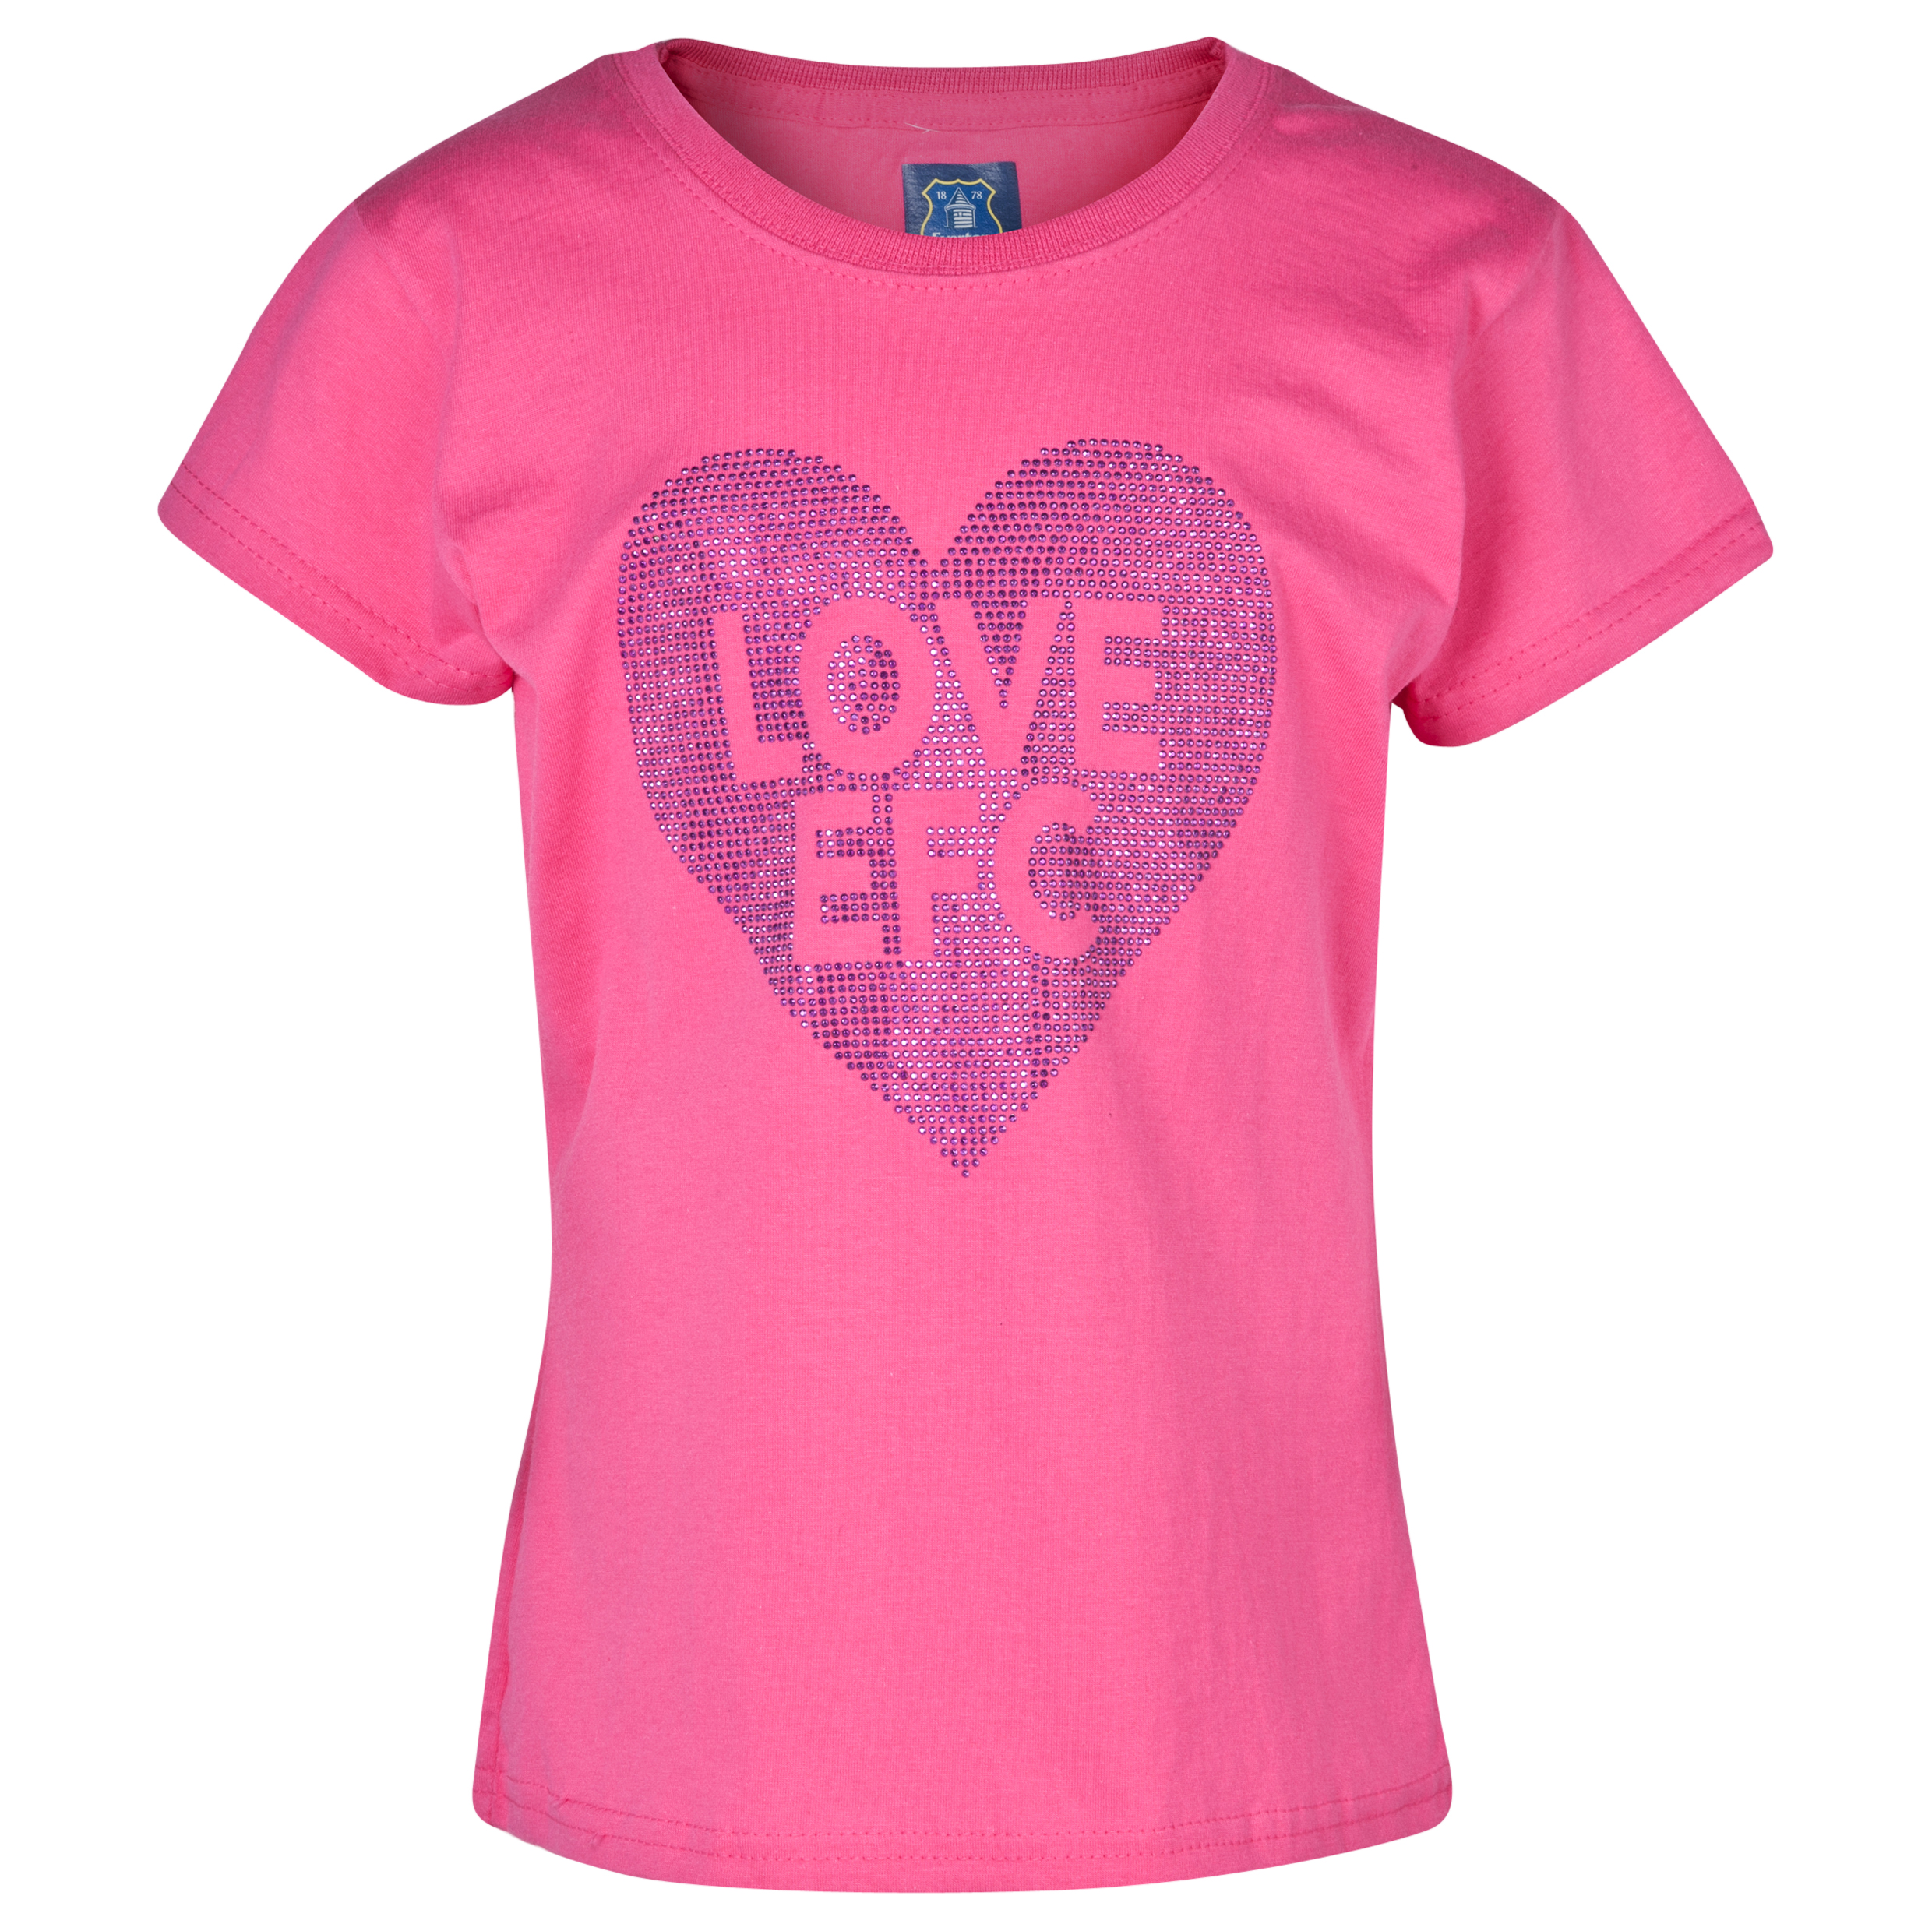 Everton Rhinestone T-Shirt - Girls Pink